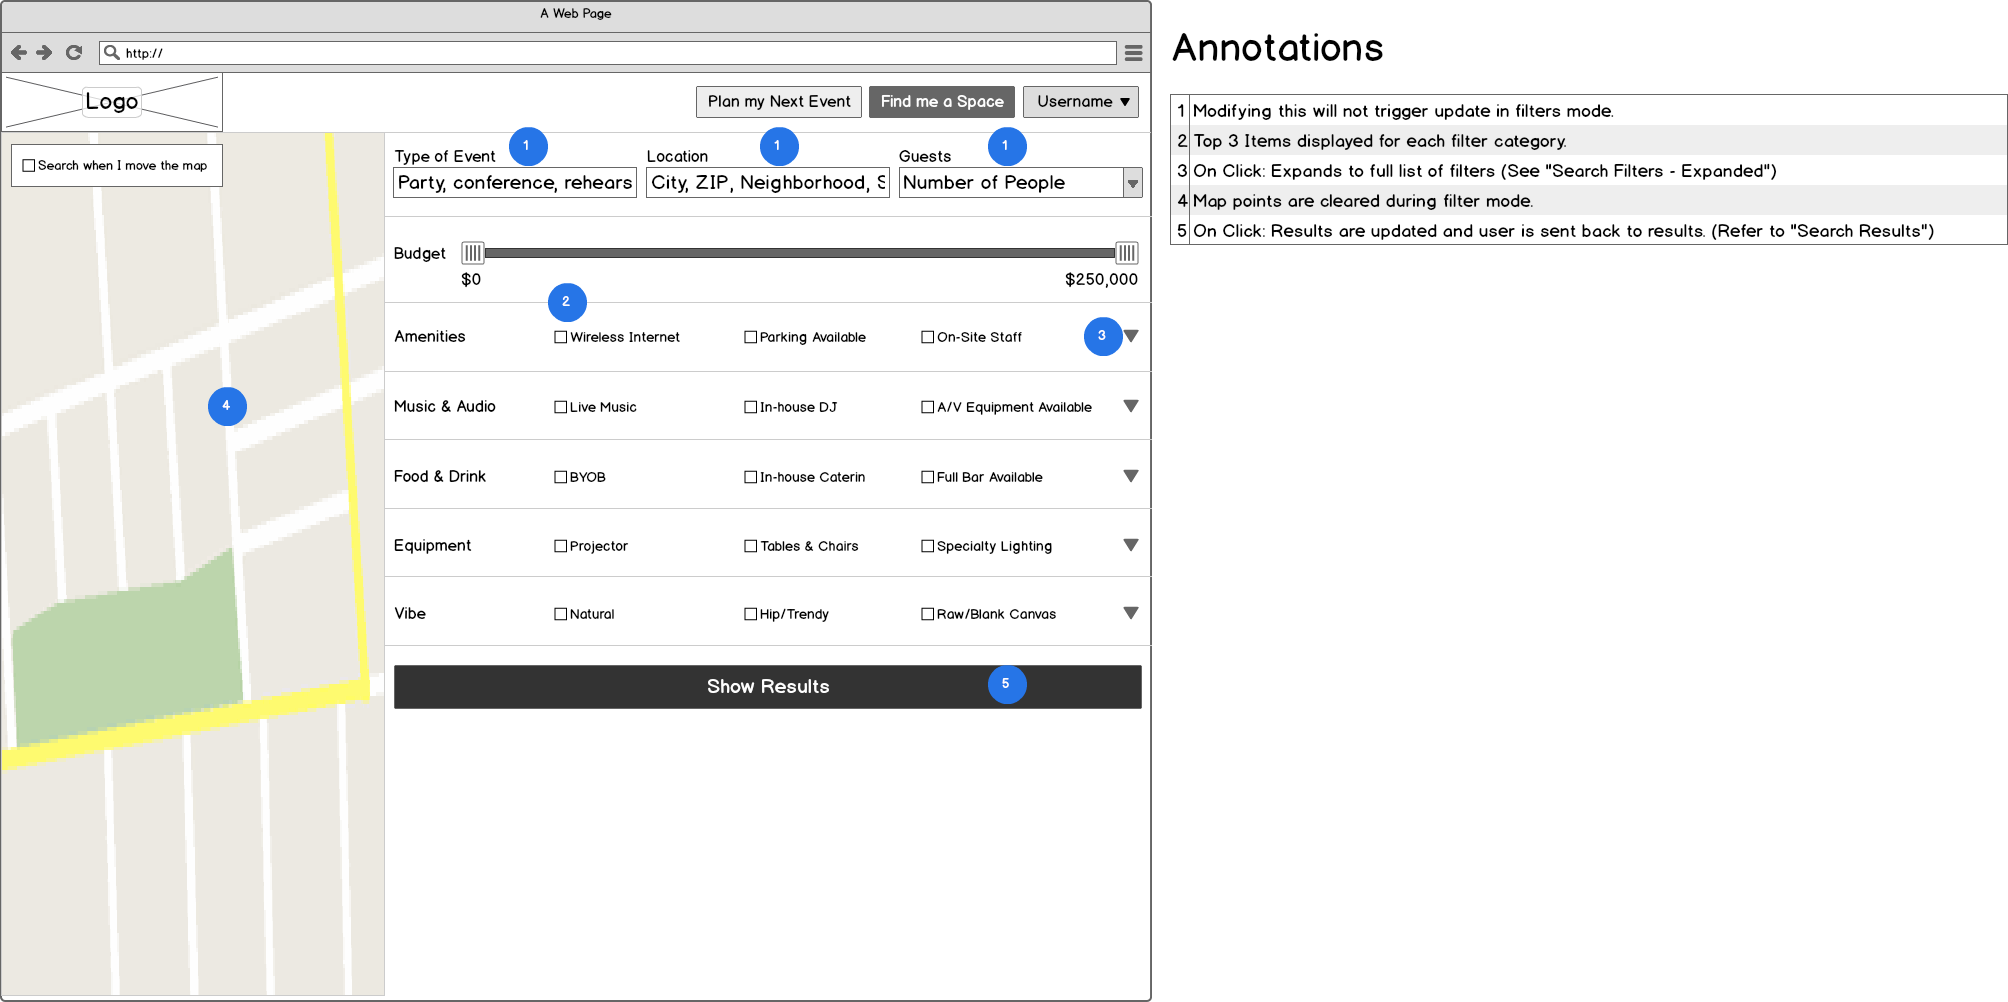 Annotated Wireframes: Search Page Filters